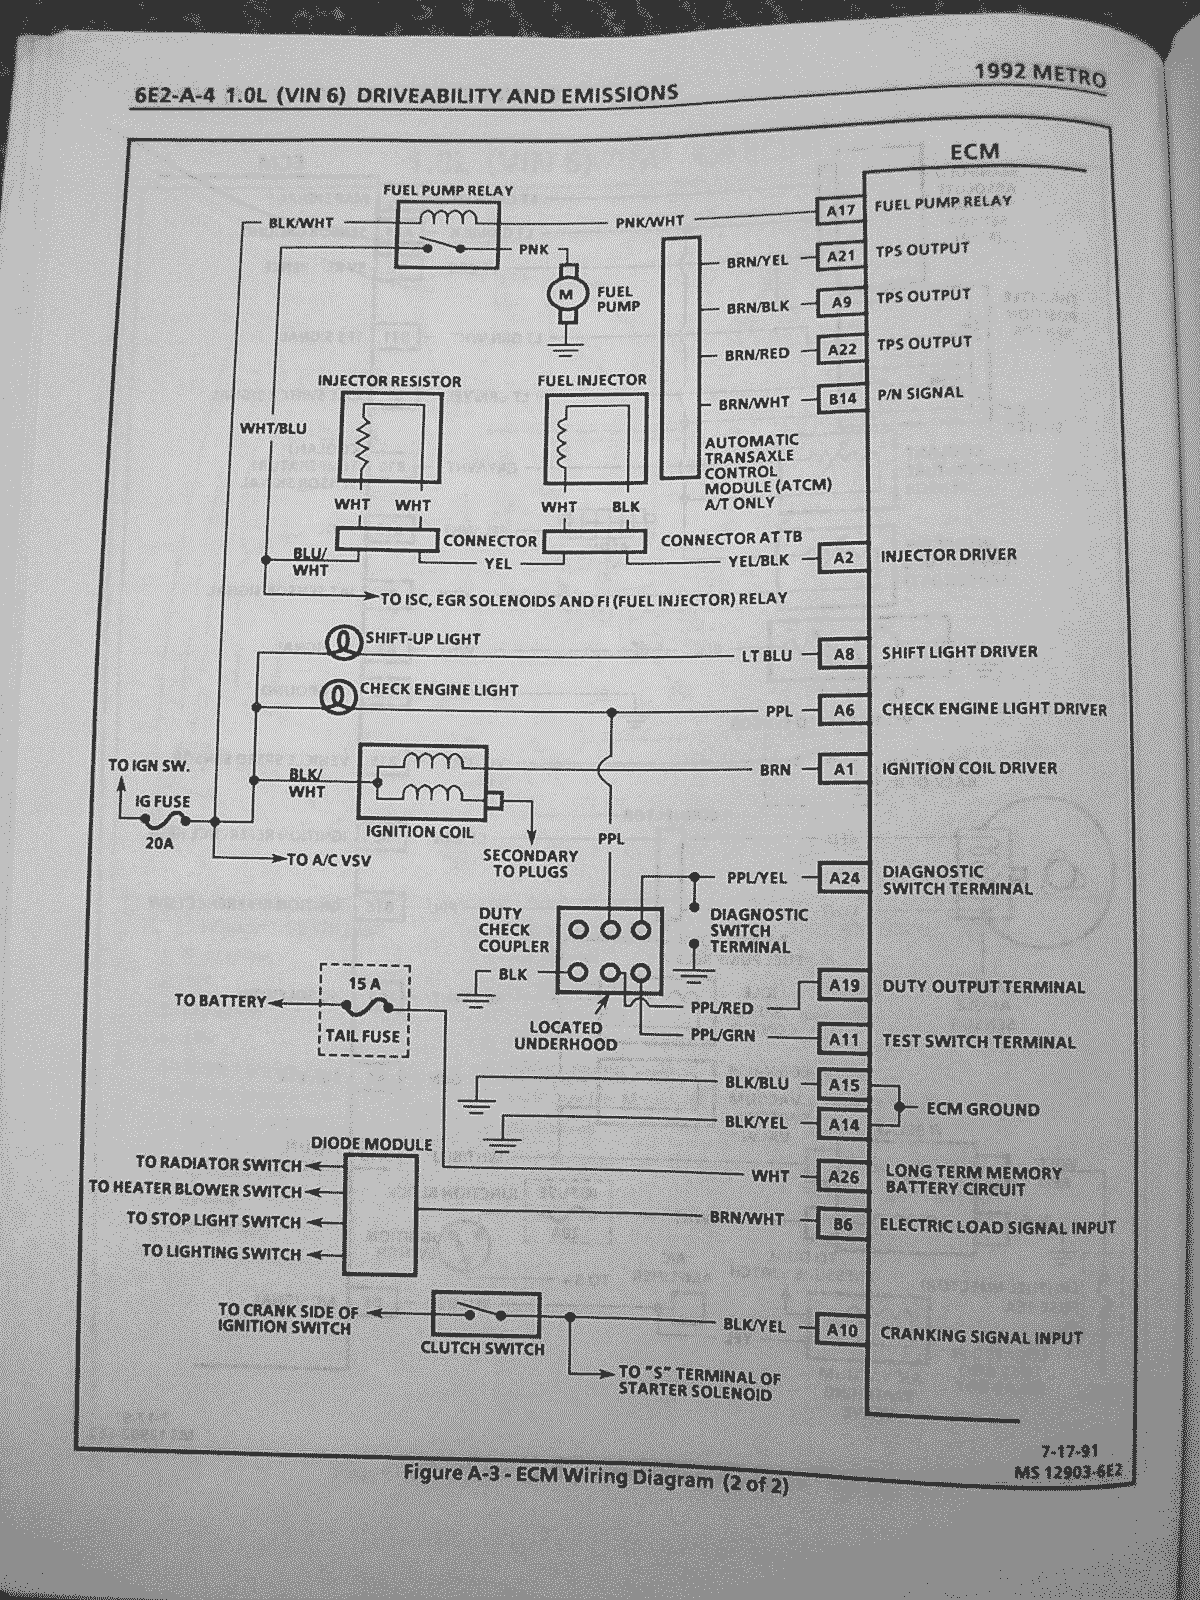 suzuki swift fuse box diagram suzuki wiring diagrams online